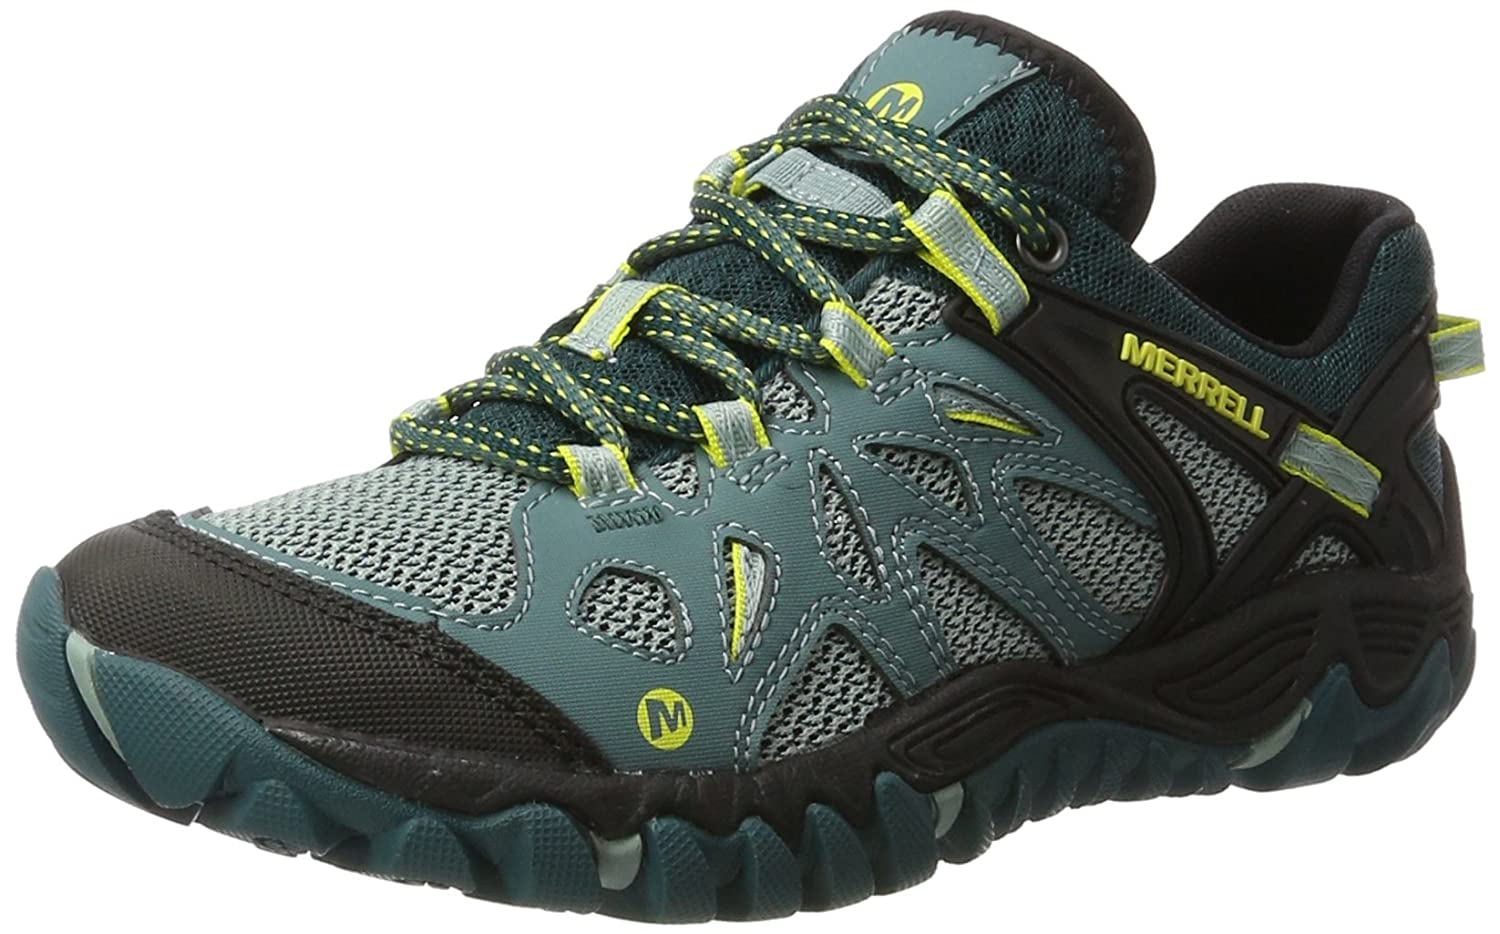 Merrell Women's All Out Blaze Aero Sport Hiking Water Shoe B01HFTW6H8 8 B(M) US|Sea Pine